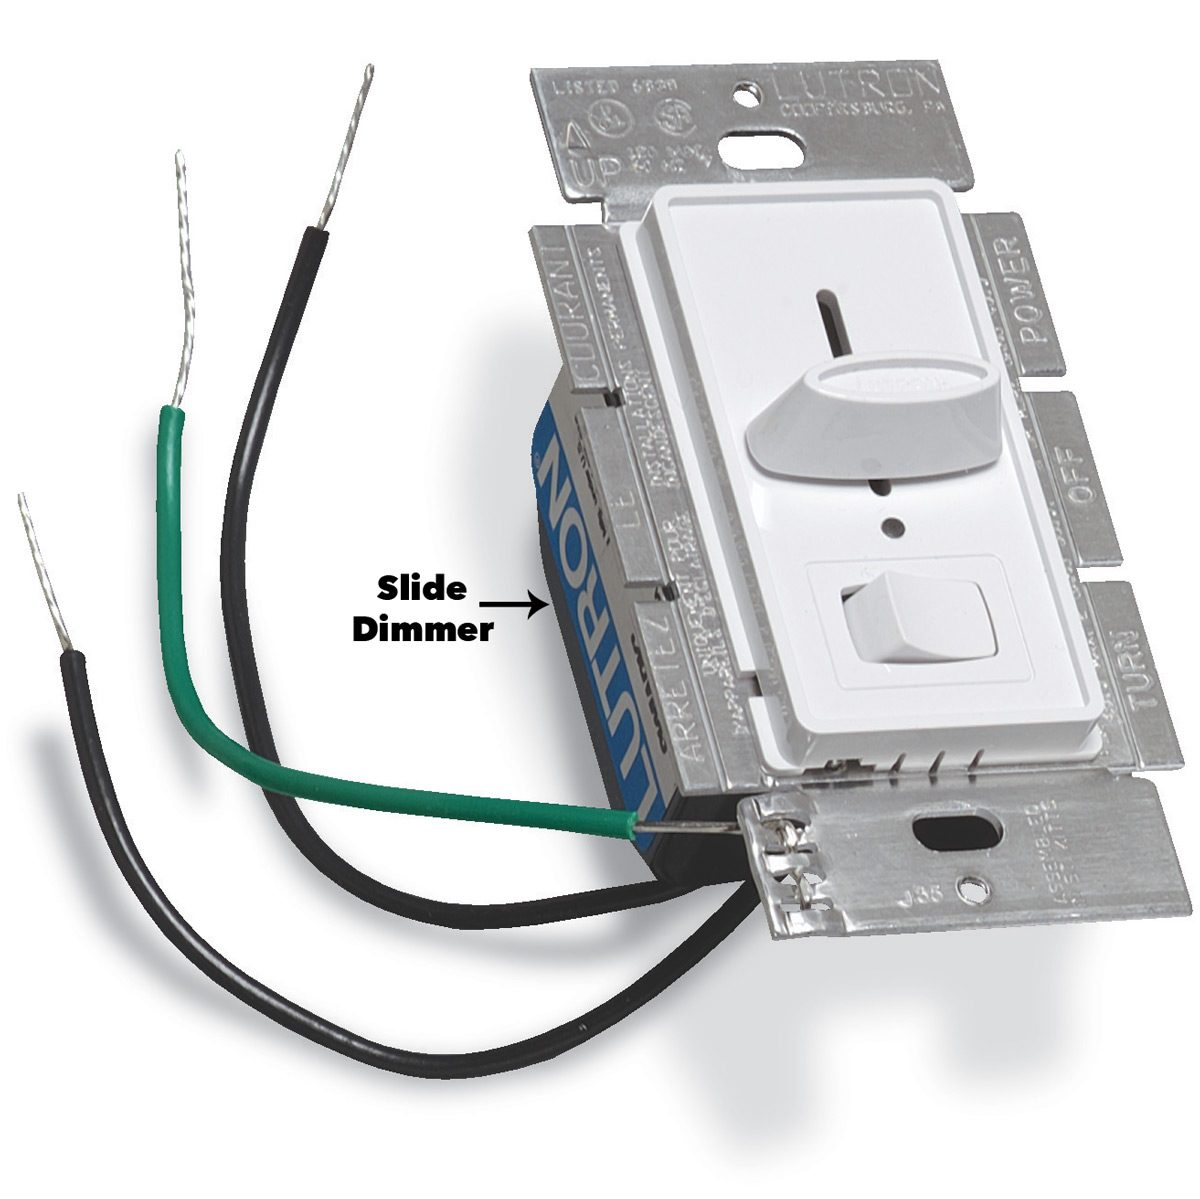 hight resolution of slide dimmer light switch